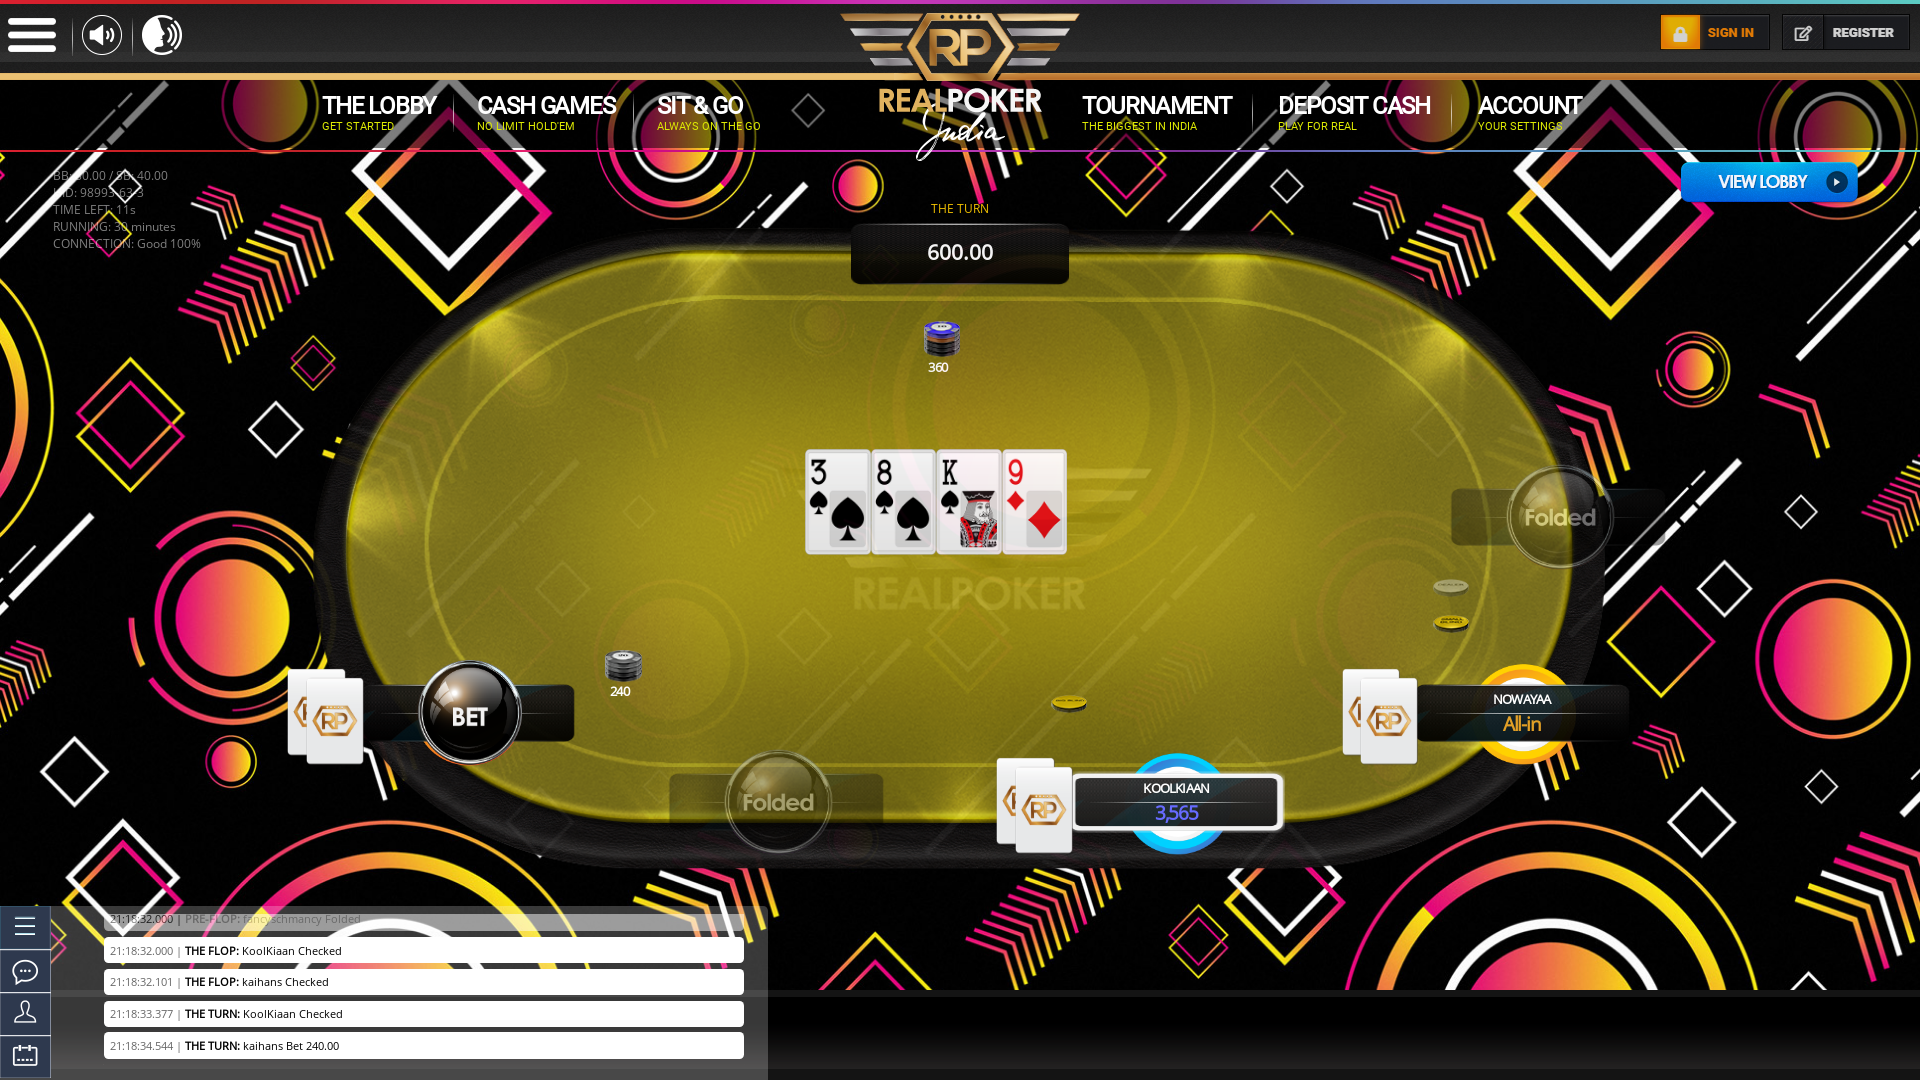 10 player texas holdem table at real poker with the table id 98993